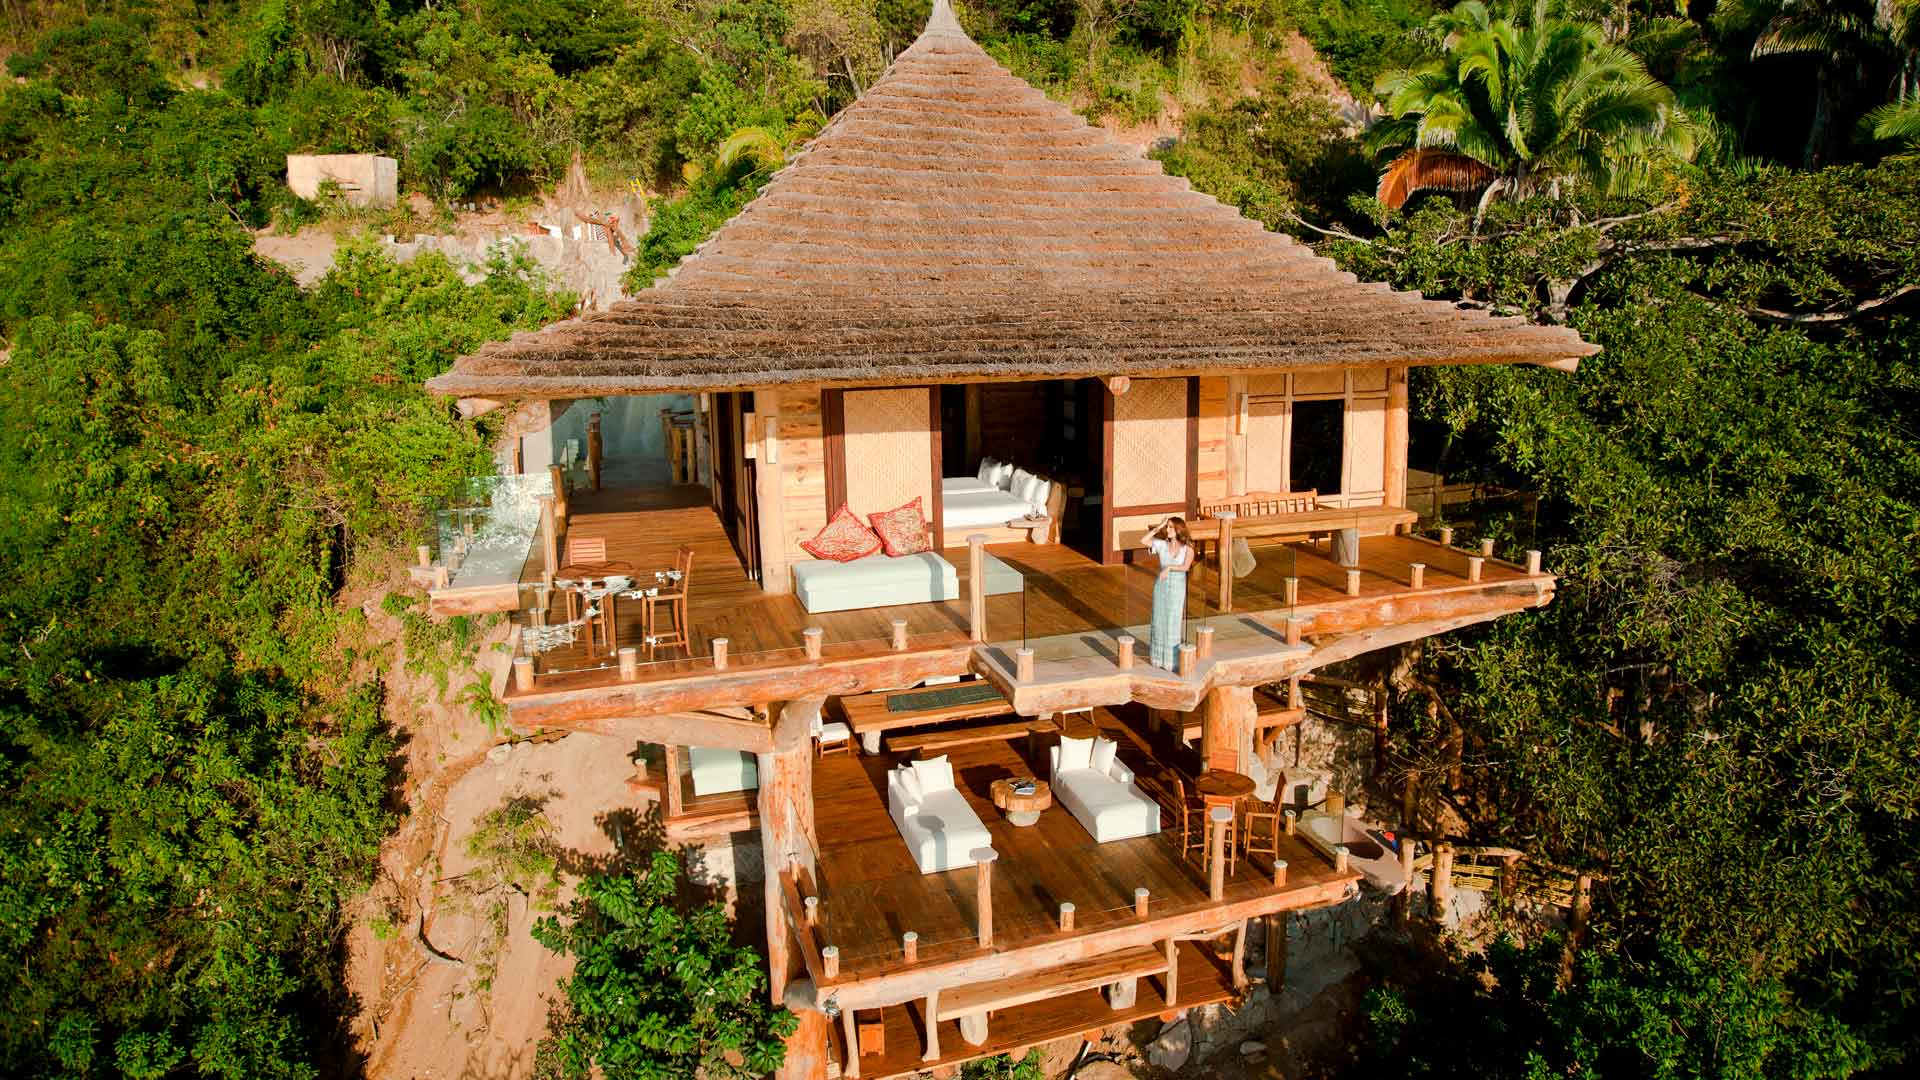 Imanta Resorts, enclave natural